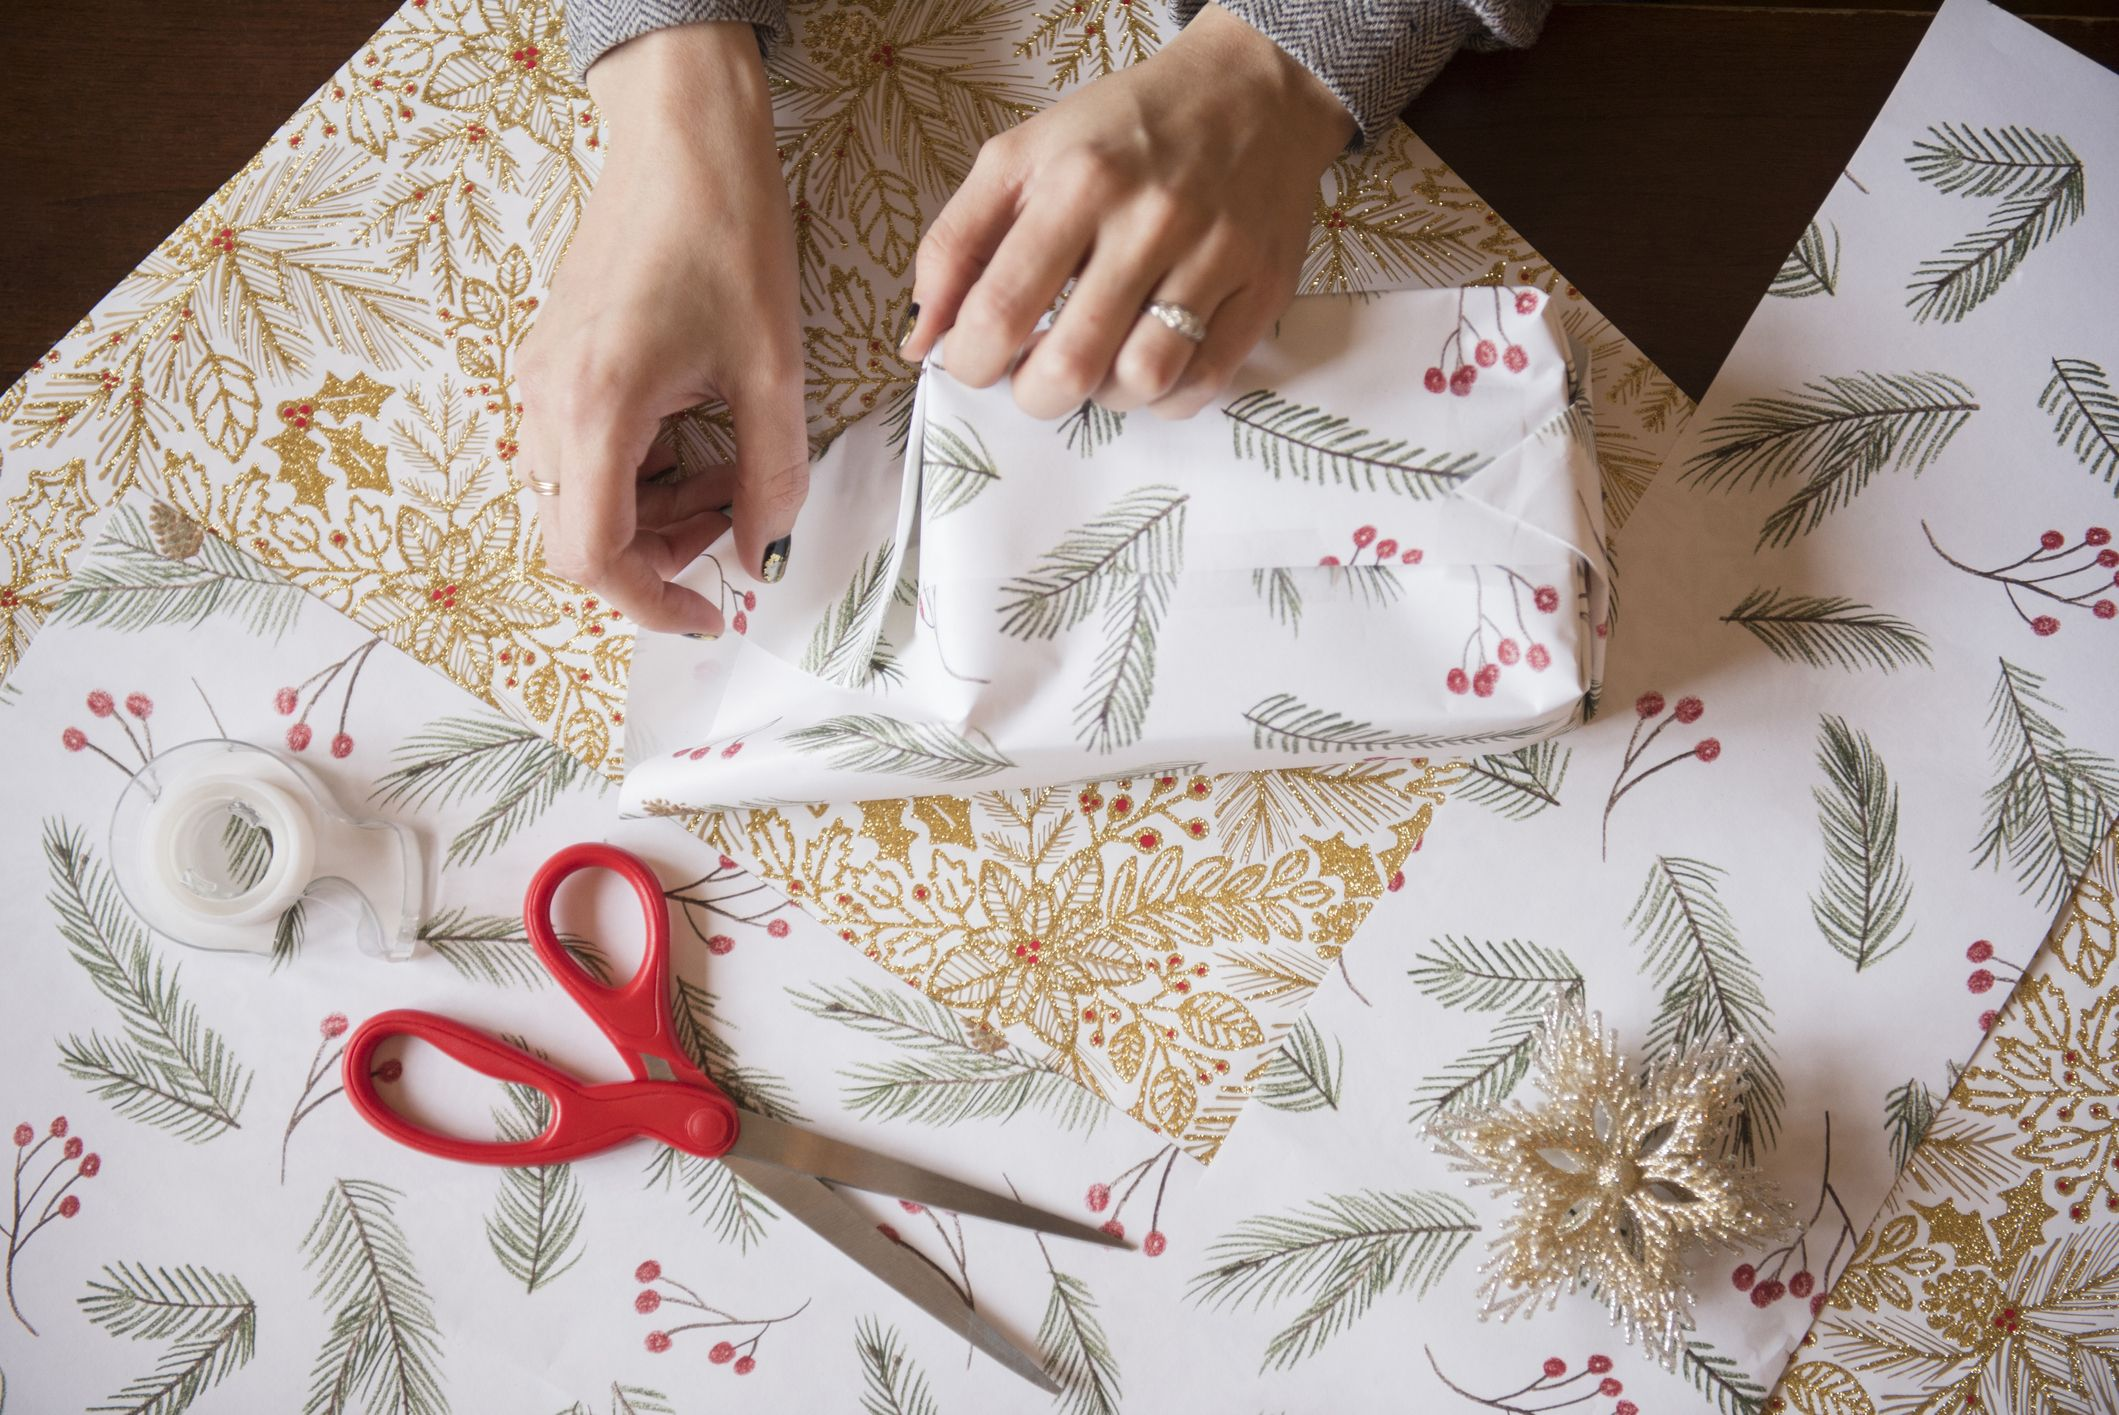 'Life-changing' Christmas wrapping hack shows how to make your paper go further